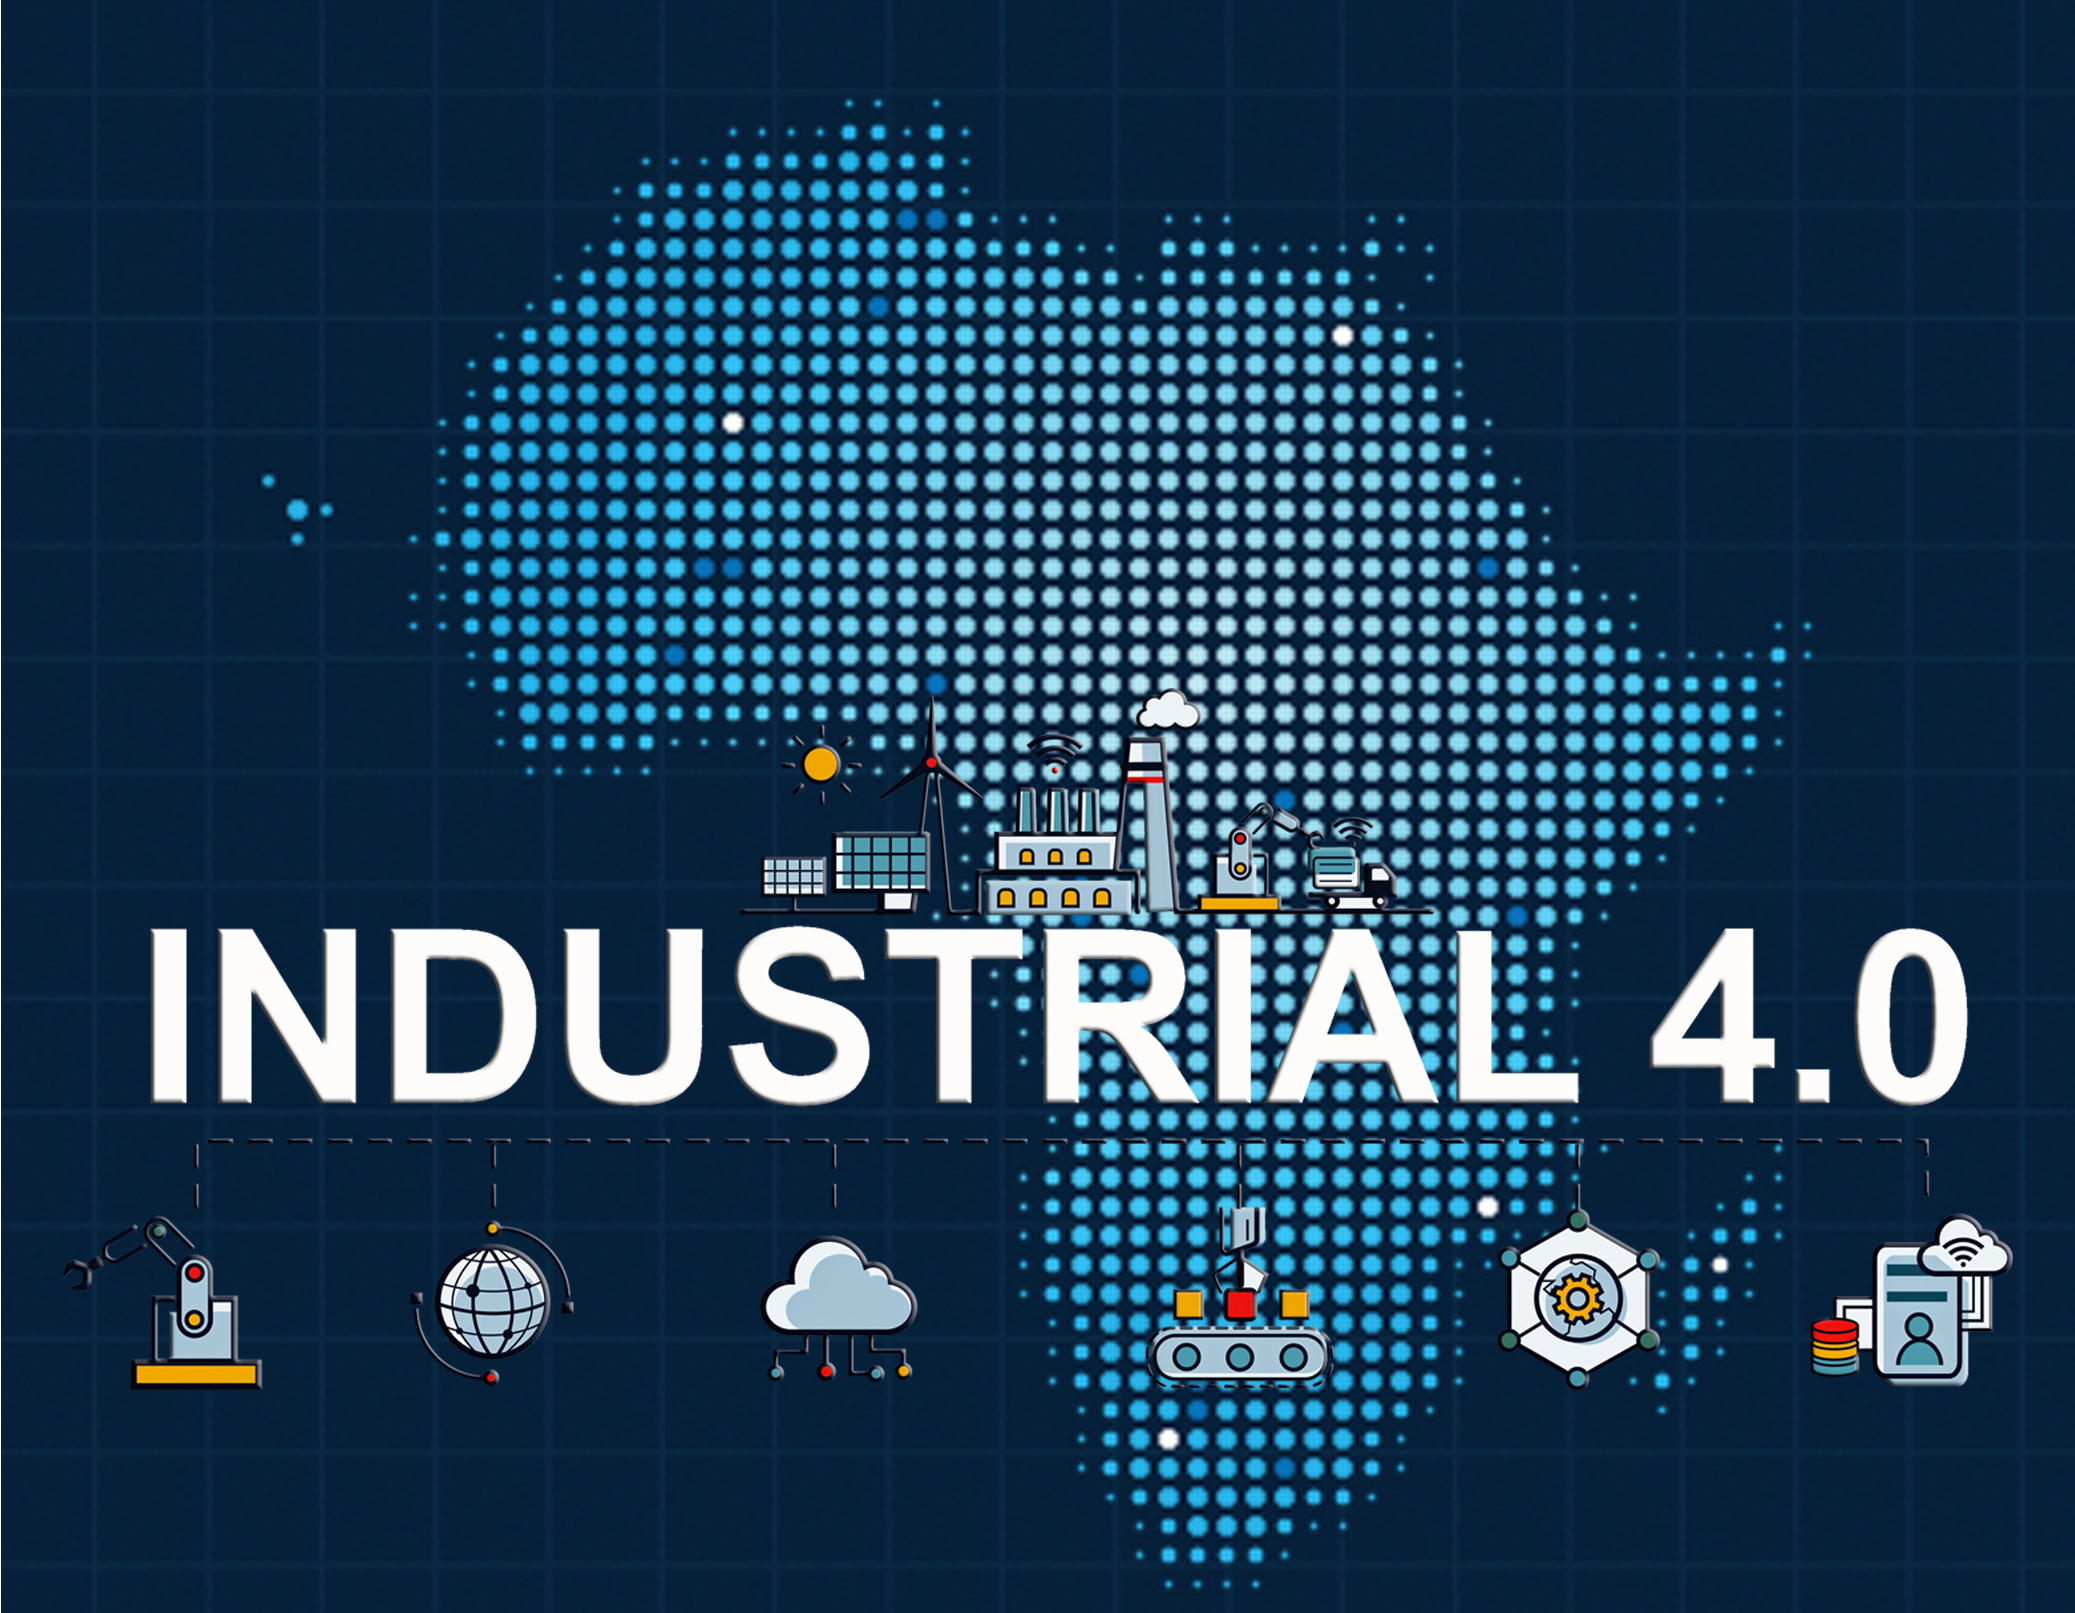 Industry 4.0 in Africa: Where are we and what are the opportunities ahead?